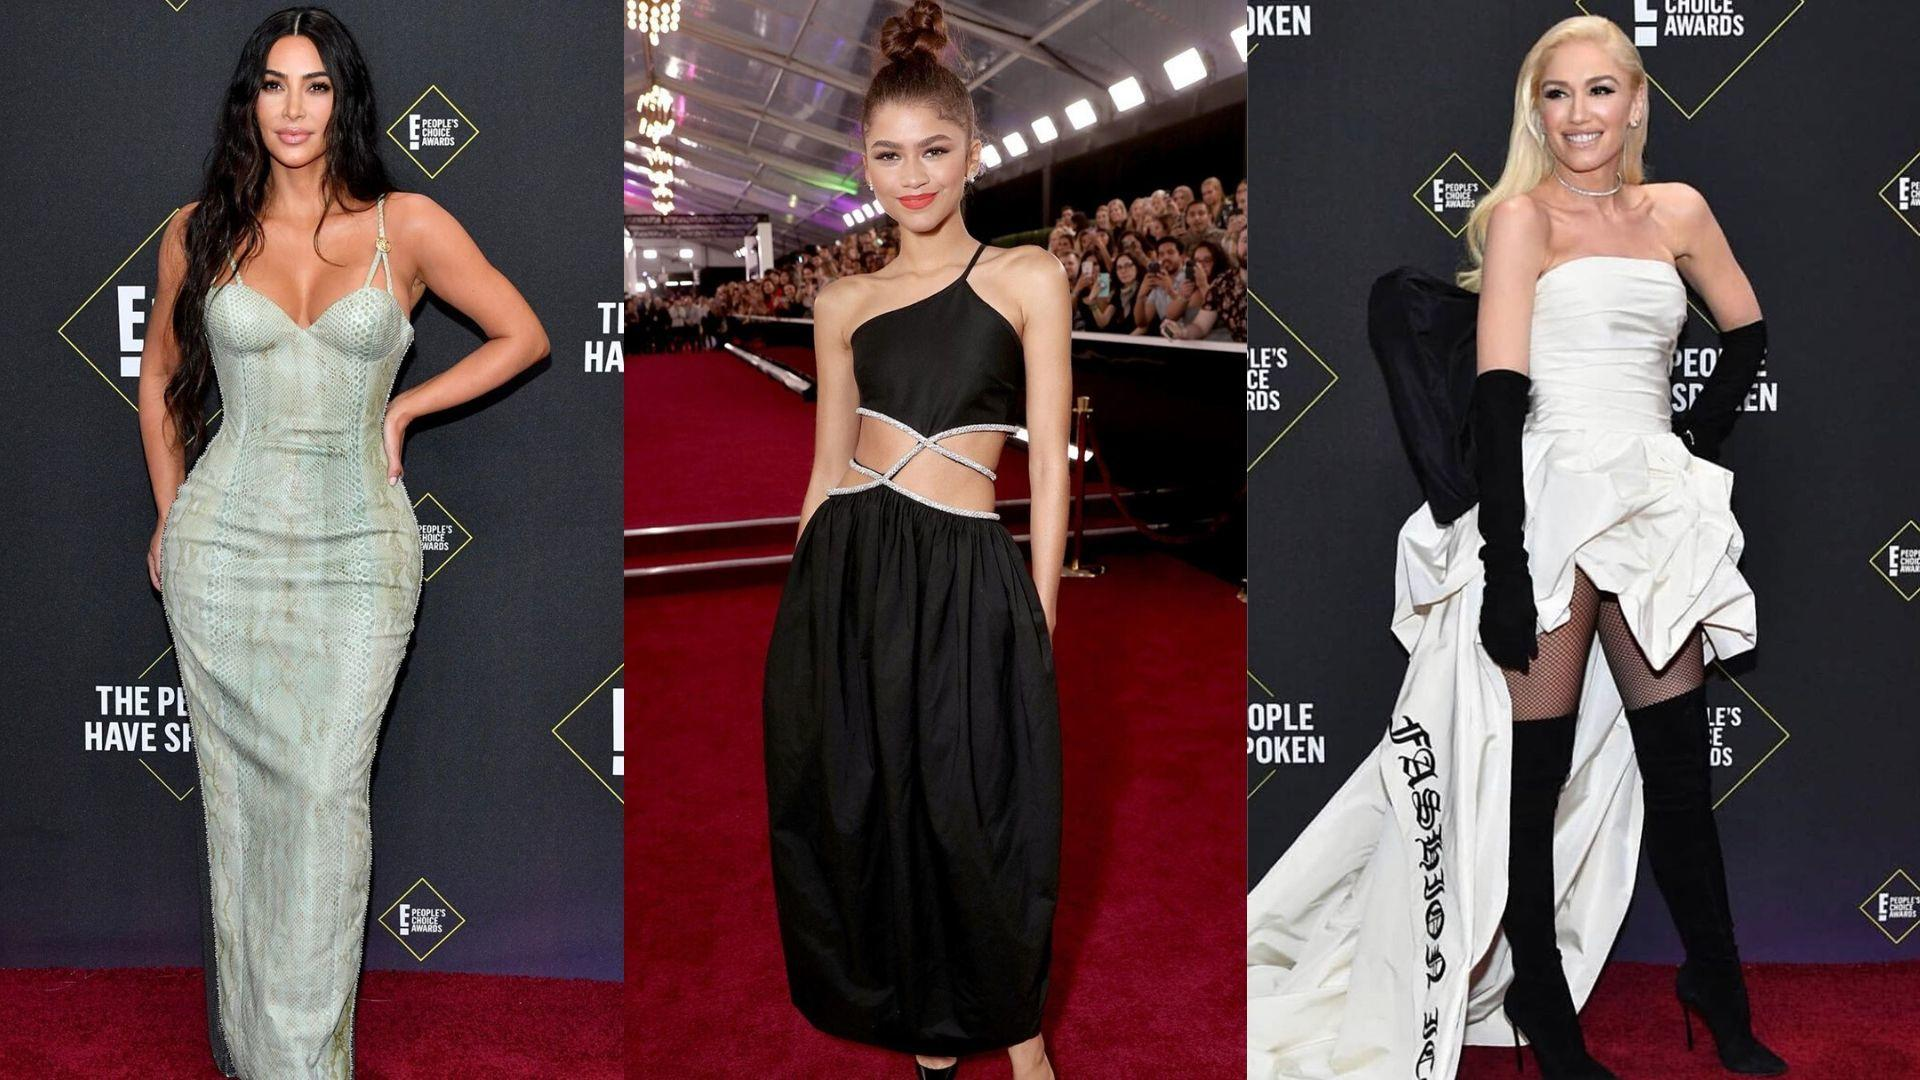 People's Choice Awards 2019: The Best Dressed Celebrities